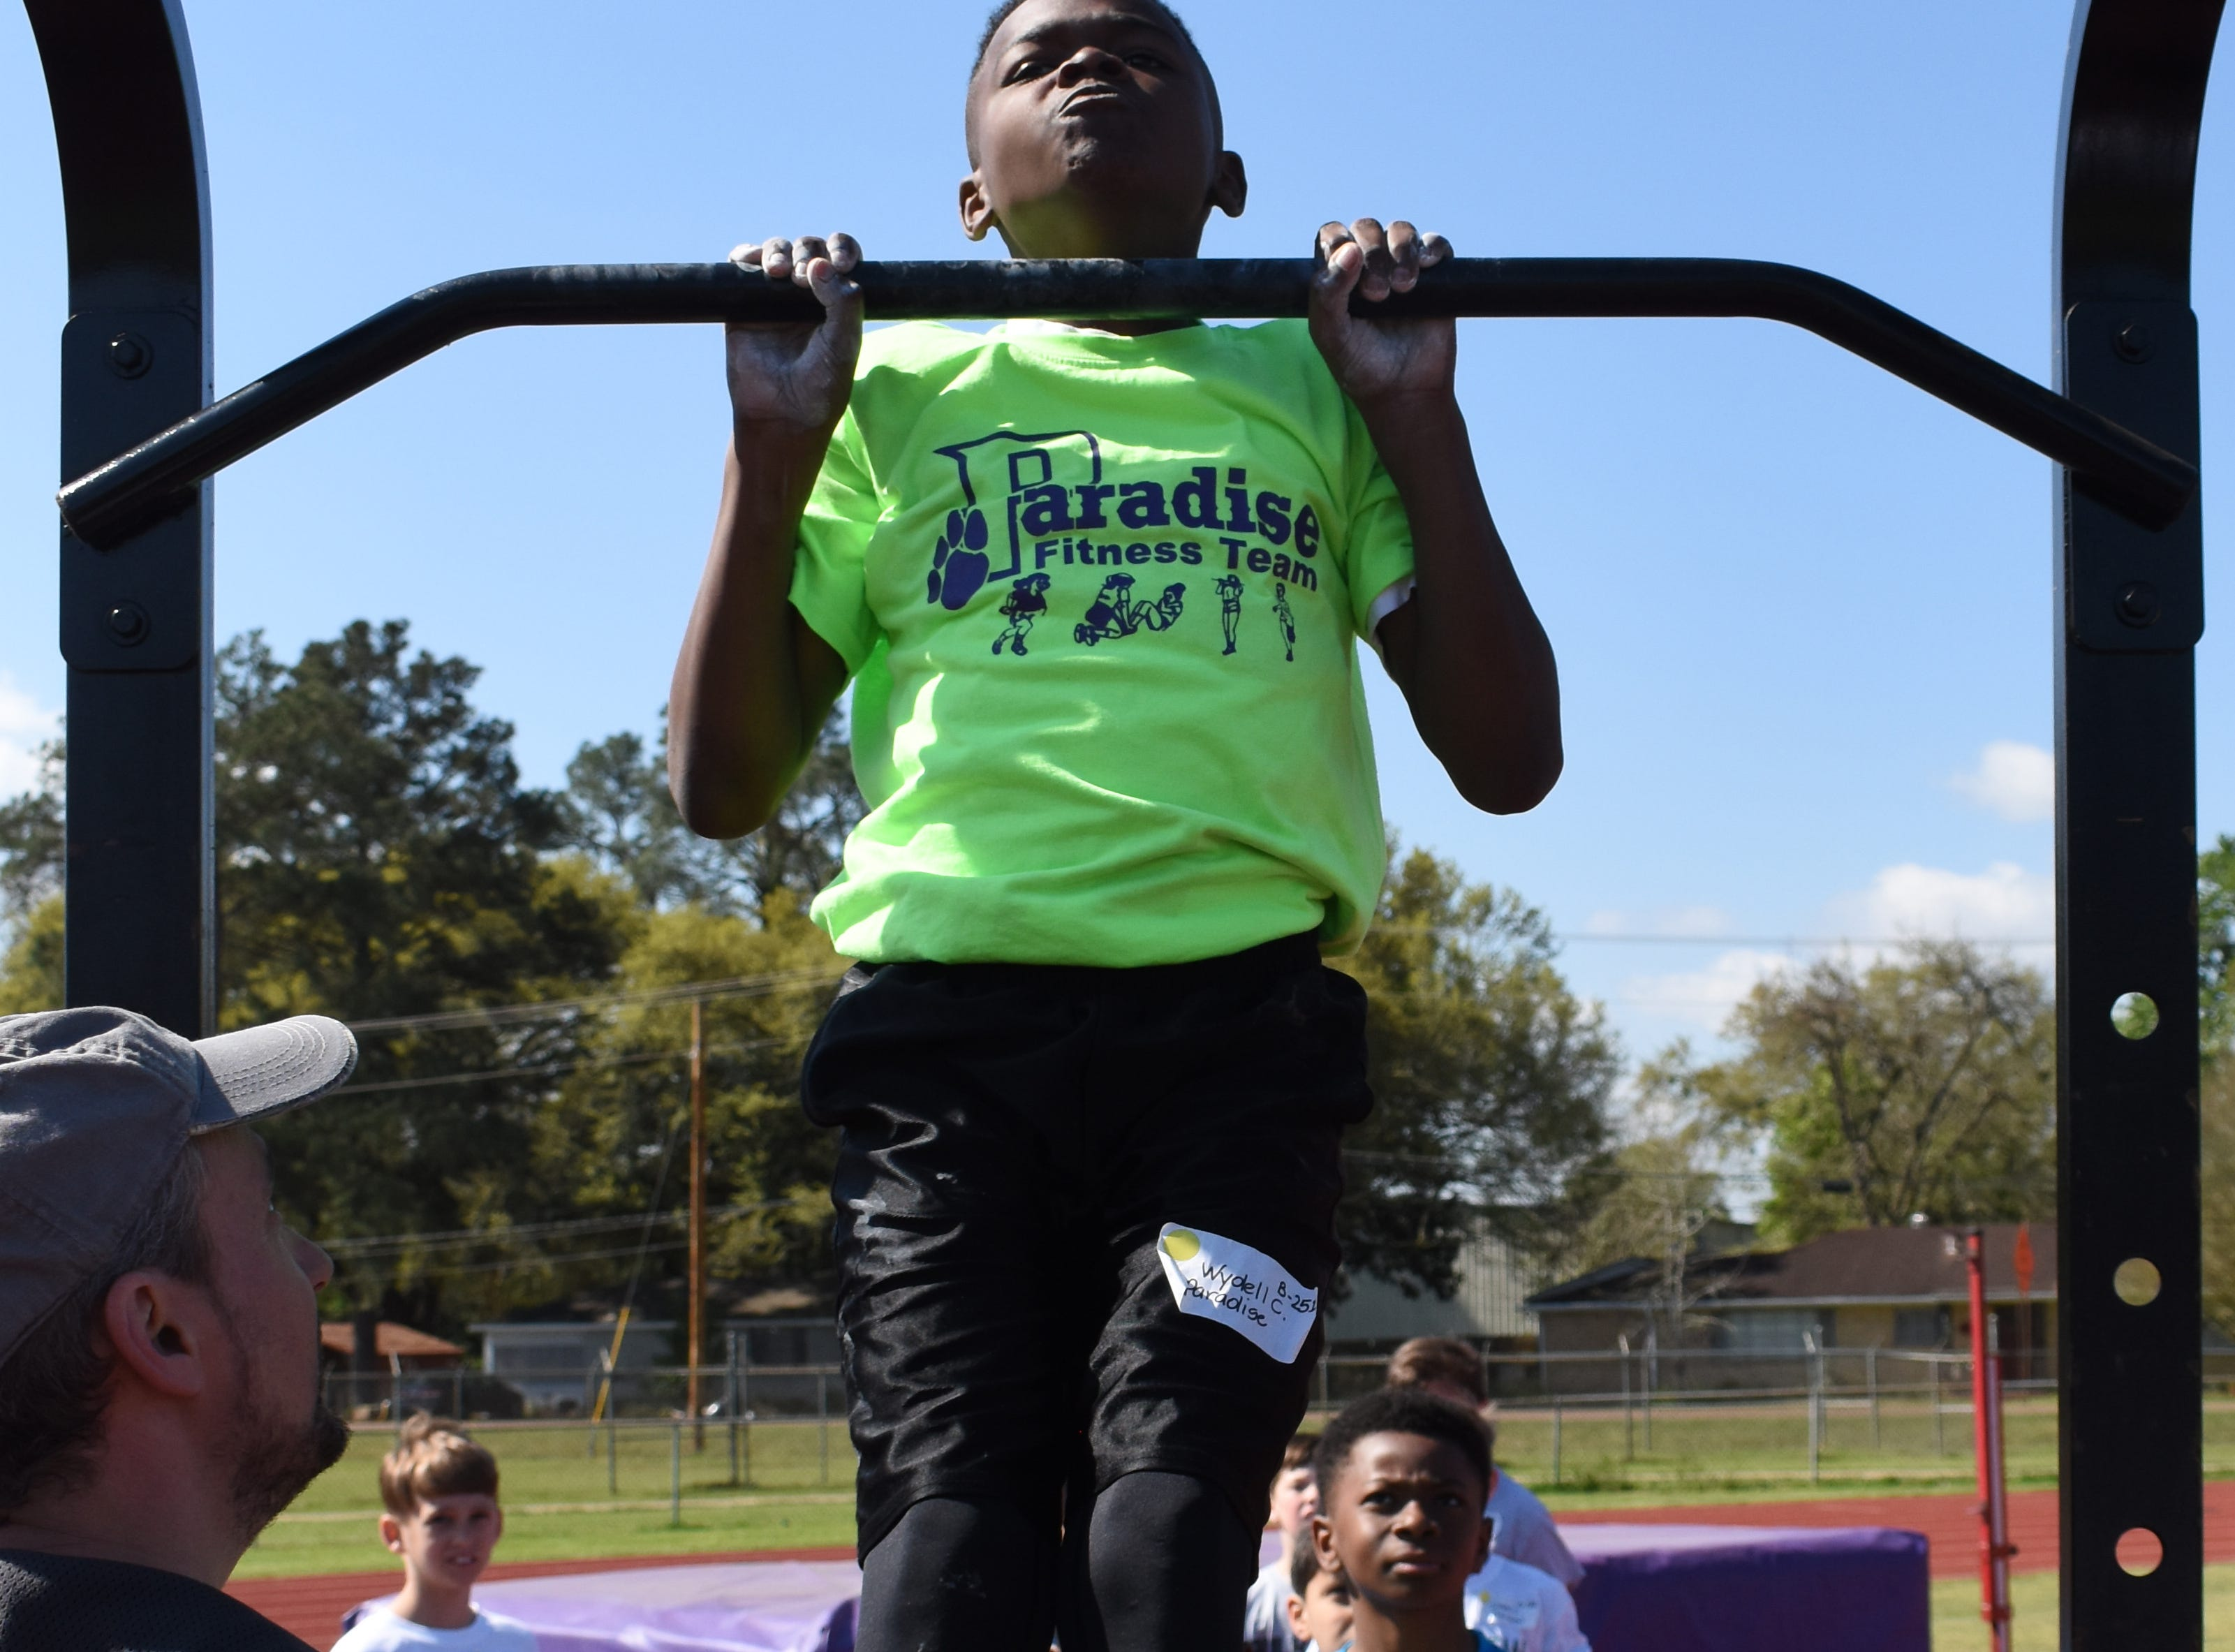 The Rapides Parish Fitness Meet was held Tuesday, March 26, 2019 at Alexandria Senior High School. About 130 students from Rapides Parish elementary schools competed in seven events: the standing long jump, sit-and-reach, pull-ups, curl-ups, shuttle run, 50-yard dash and 600-yard run. The top three schools at the fitness meet were Nachman Elementary with 2,456 points; Hayden R Lawrence Elementary with 2,270 points; and Prompt Succor with 2,068 points. The top three girls were Aubree Davis from Ball Elementary in first place; Madeline Davis of Nachman Elementary in second place; and Amari Dupar of Cherokee Elementary in third place.The top three boys were Jacob Dean in first and Jaxon Ross in second. Both are from Nachman Elementary. Bryce Warthen of Hayden R. Lawrence Elementary was in third.The parish competition is part of the Governor's Games, a six-month statewide sporting event that involves every recreation department in the state. Commissioners run Olympic-style events across the state leading up to a state championship. The three boys and three girls with the highest overall scores make up the Rapides team for the state meet which will be held April 27, 2019 at Alexandria Senior High School. The Rapides Parish Fitness Team won state last year. The top boy, Jacob Deans, and top girl, Reana Dupar, were also from Rapides Parish. They were awarded the titles of Mr. Fitness and Miss Fitness.